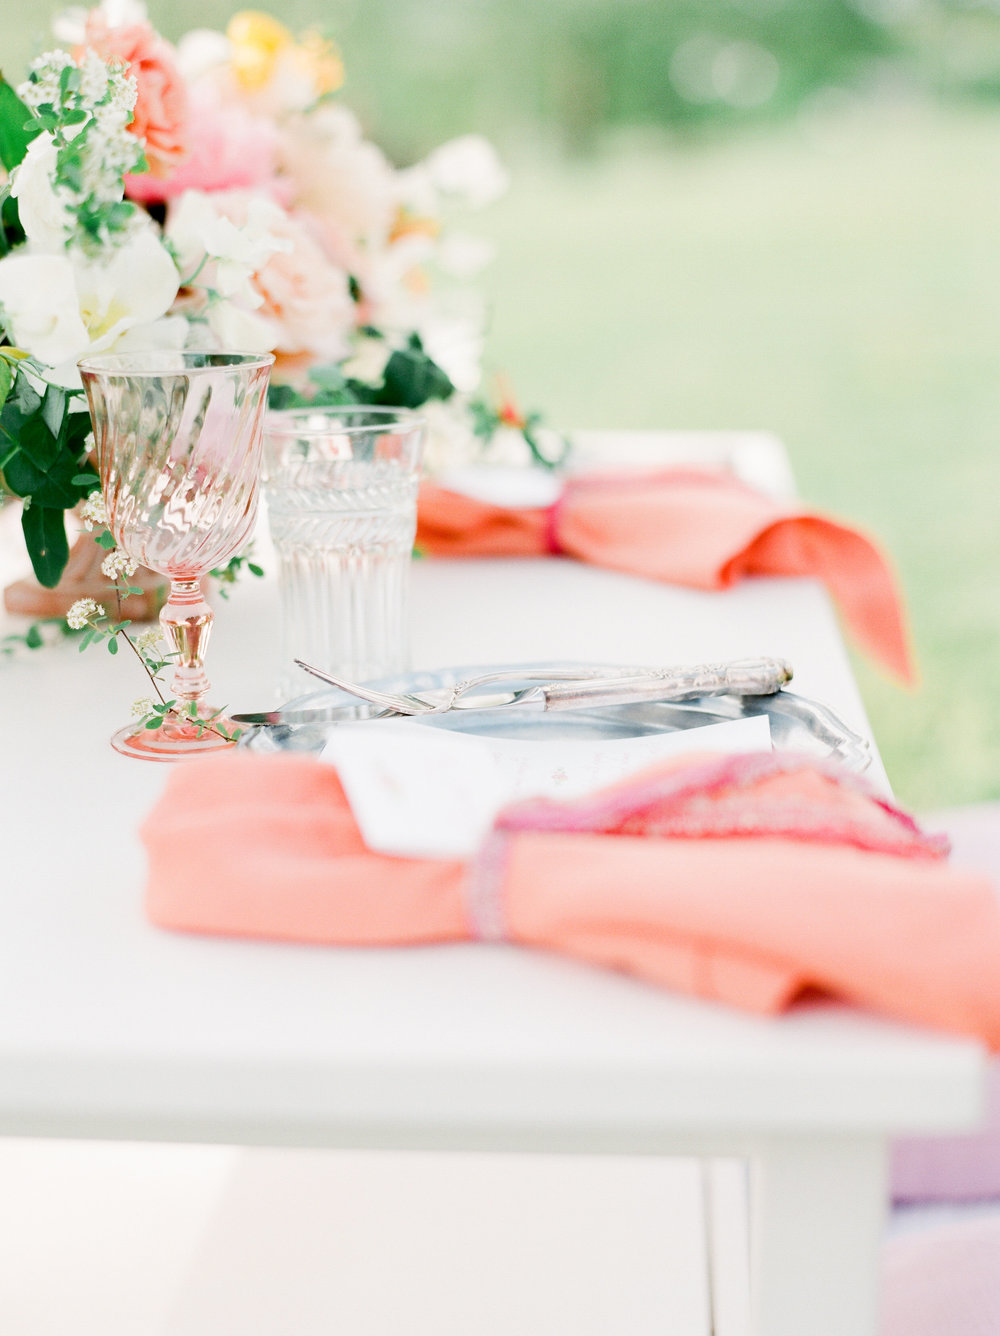 Blush goblet and a linen napkin in a juicy color brings the floral color to the neutral place settings.   Paper goods by  Designs In Paper . Styling by Feather + Oak. Photo by  Julie Paisley .   Florals by  Petal and Pine .